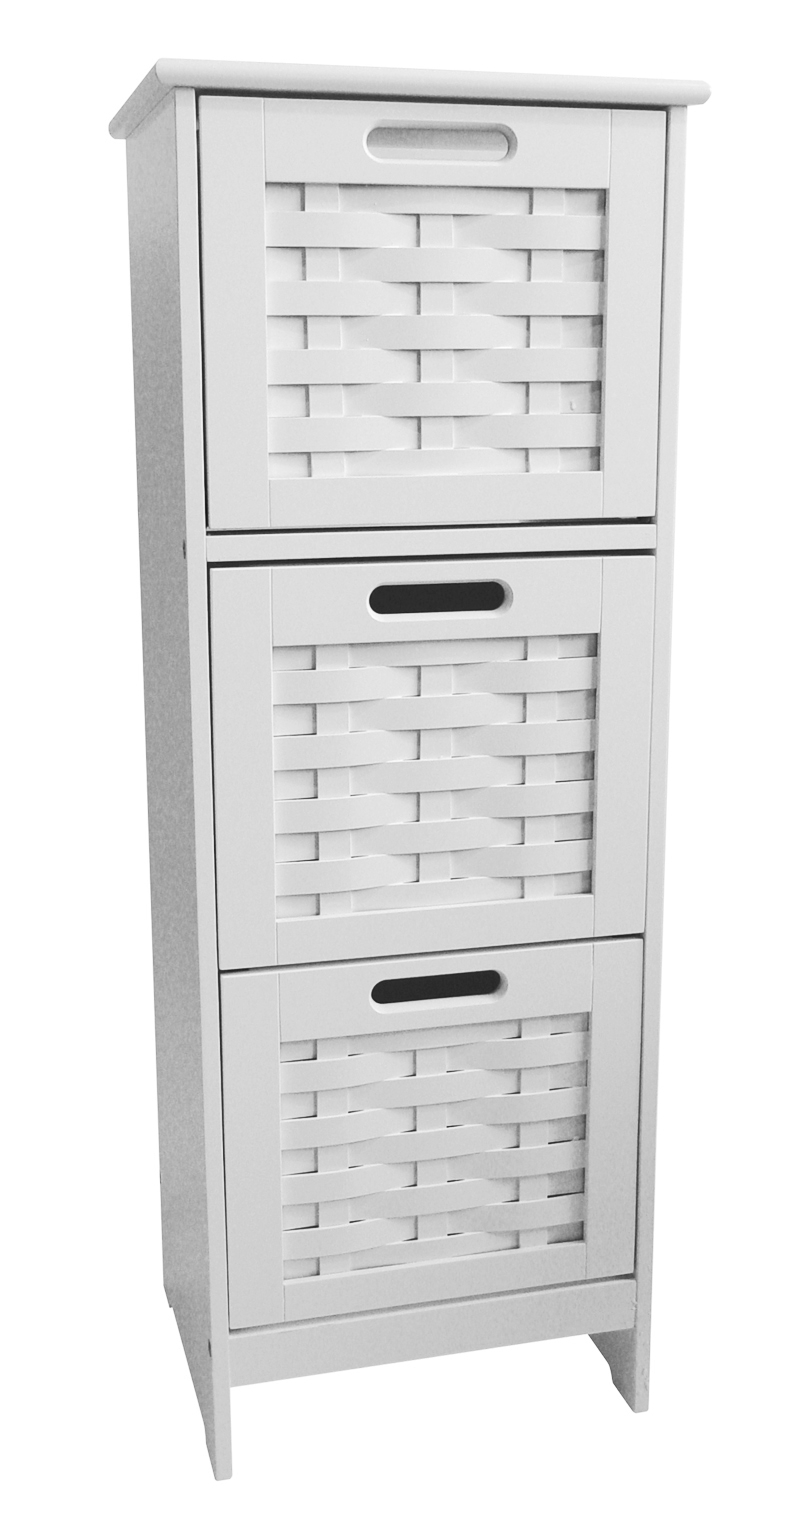 Details About 3 Drawer Slim Weave Storage Unit Bathroom Storage Cabinet White within dimensions 787 X 1527